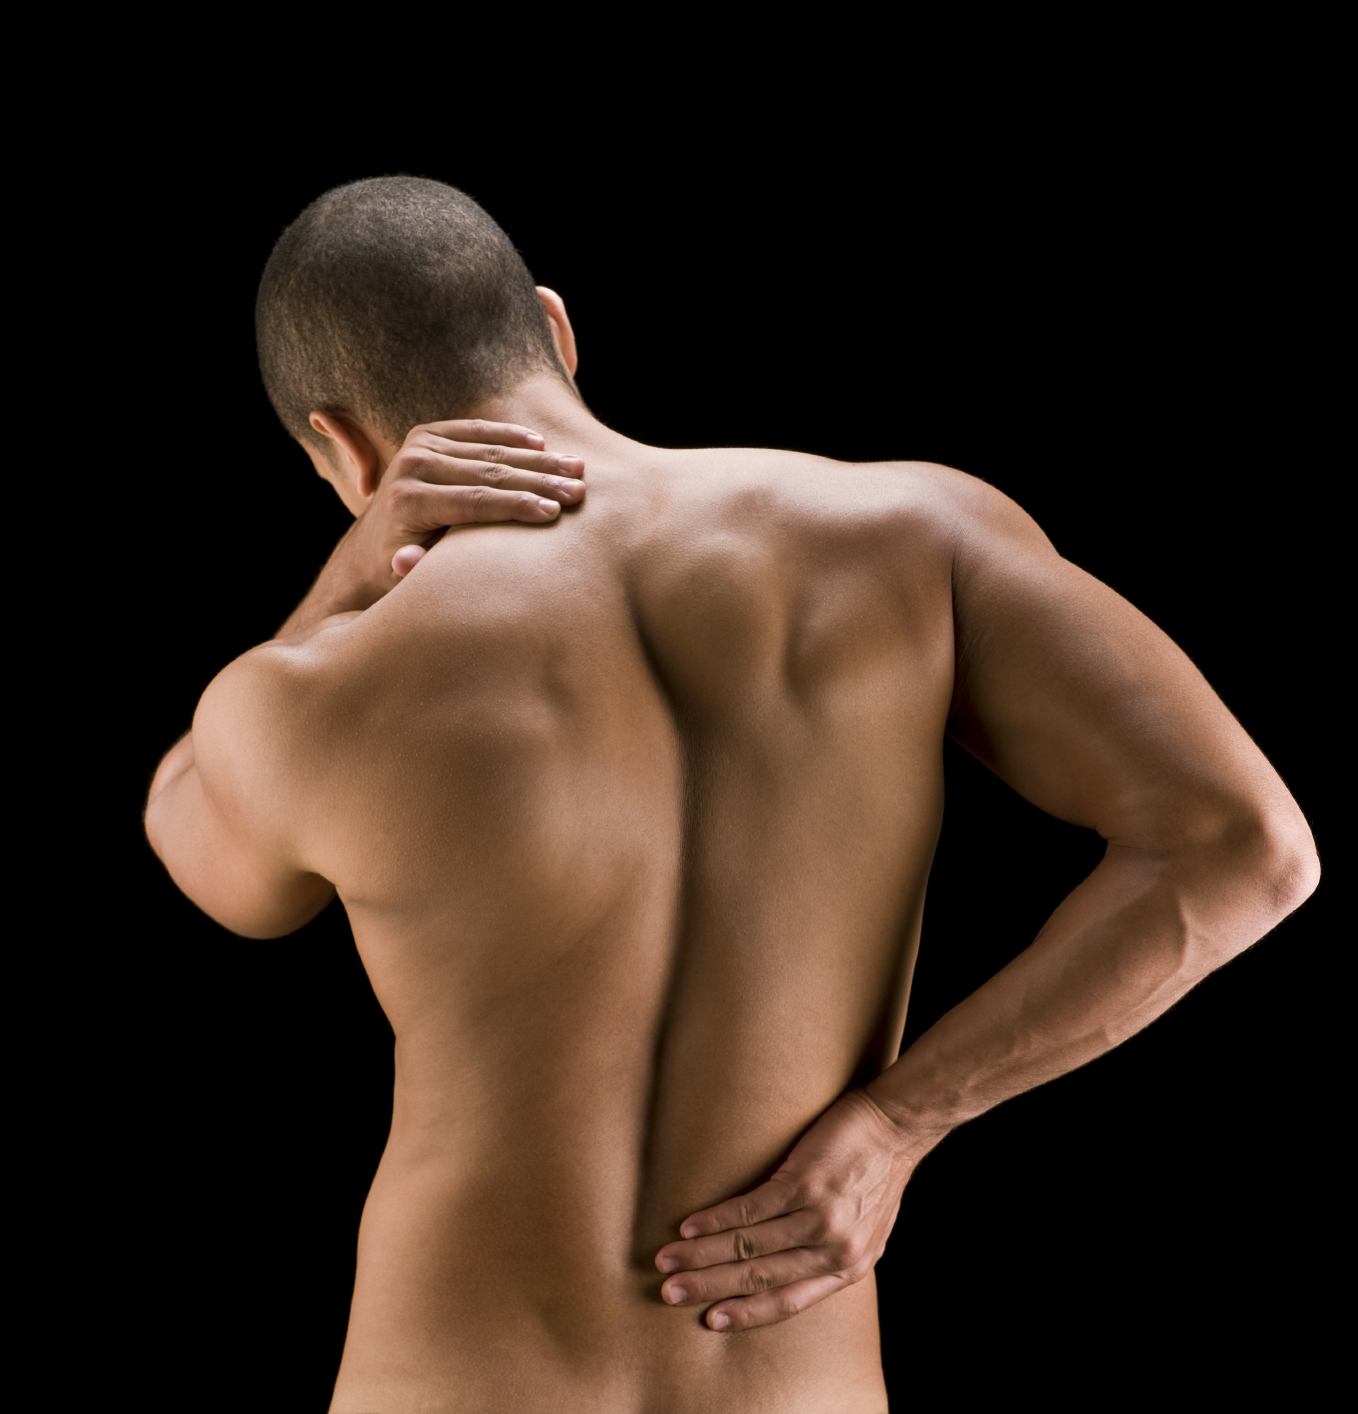 http://3.bp.blogspot.com/-yngAS5medf4/UYyZ7UrAjRI/AAAAAAAAJQA/HGFvtKVrhnQ/s1600/How-To-Get-Rid-Of-Back-Pain.jpg